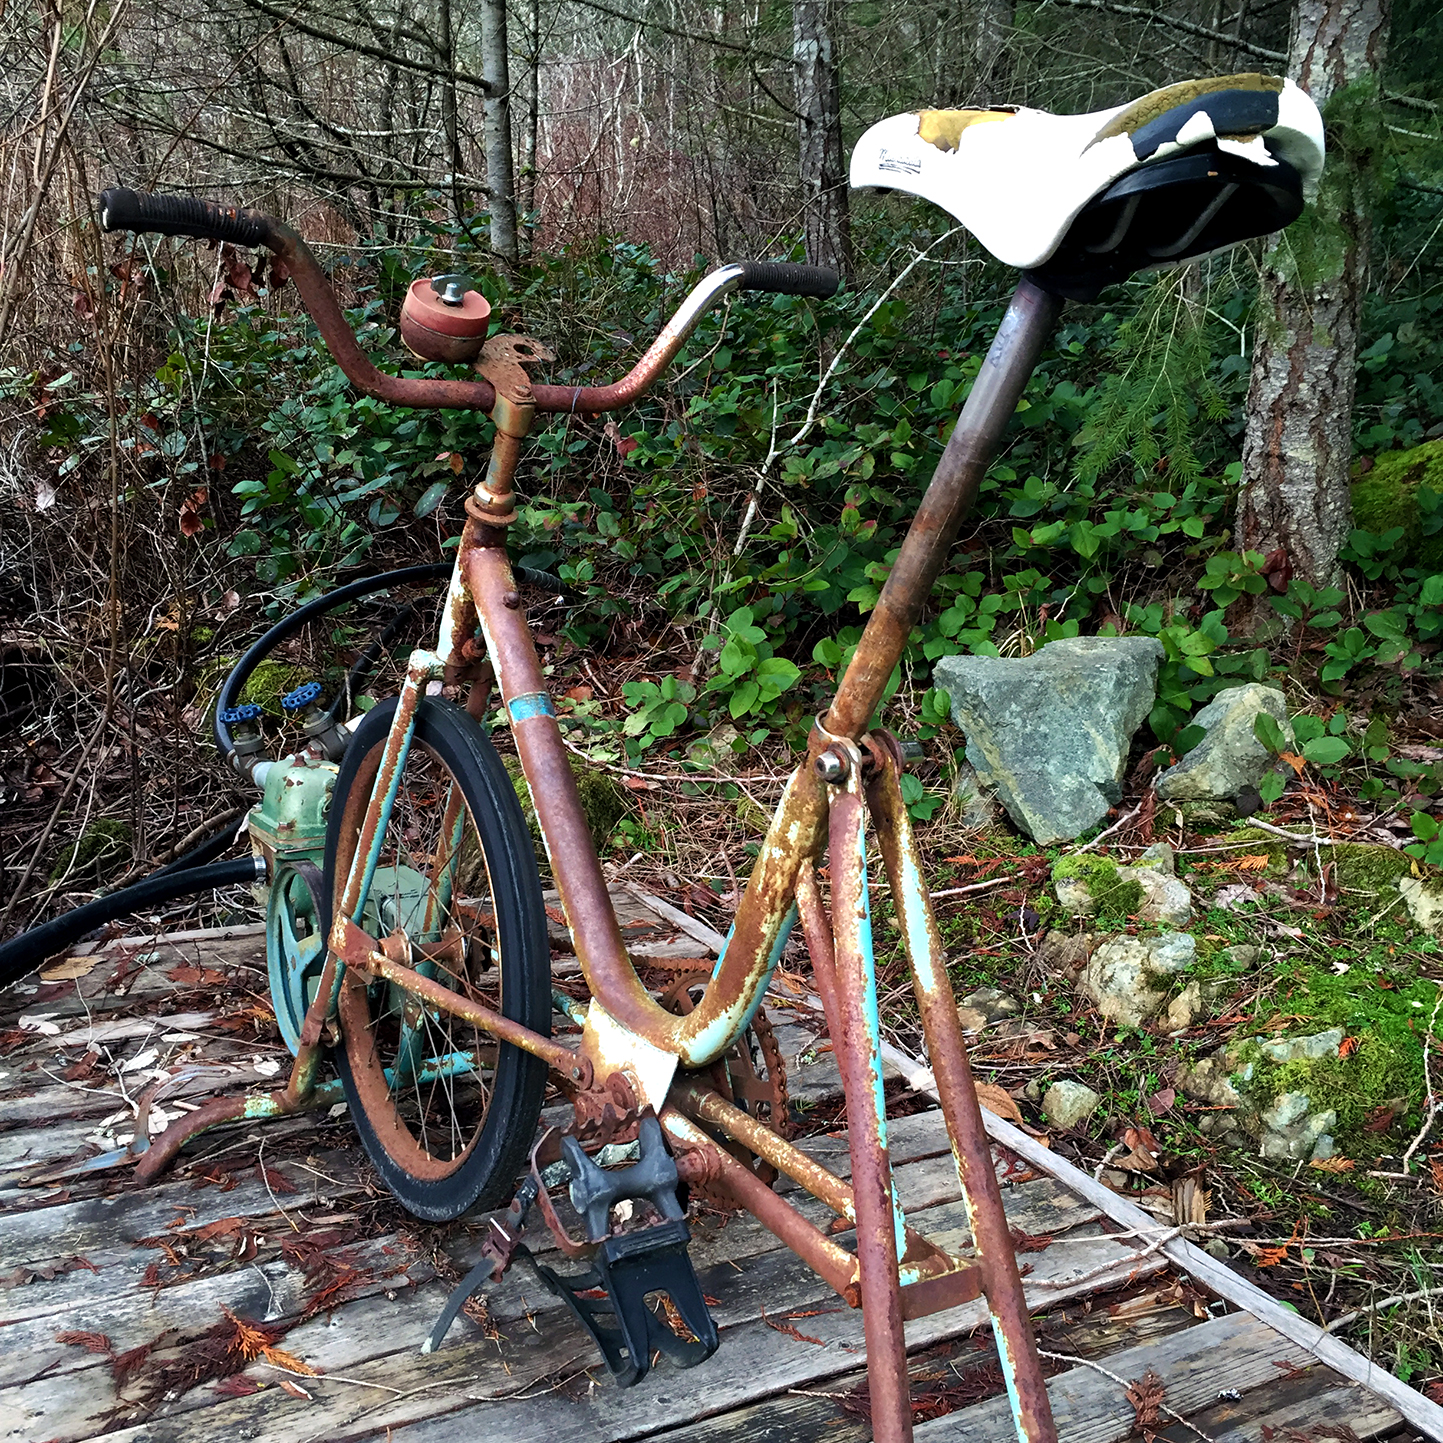 Aside from its natural beauty, the property has many characteristics that add to its charm. Like this 30-year-old exercise bike, which is used to pump water from the lake into the cabin by turning the pedals.